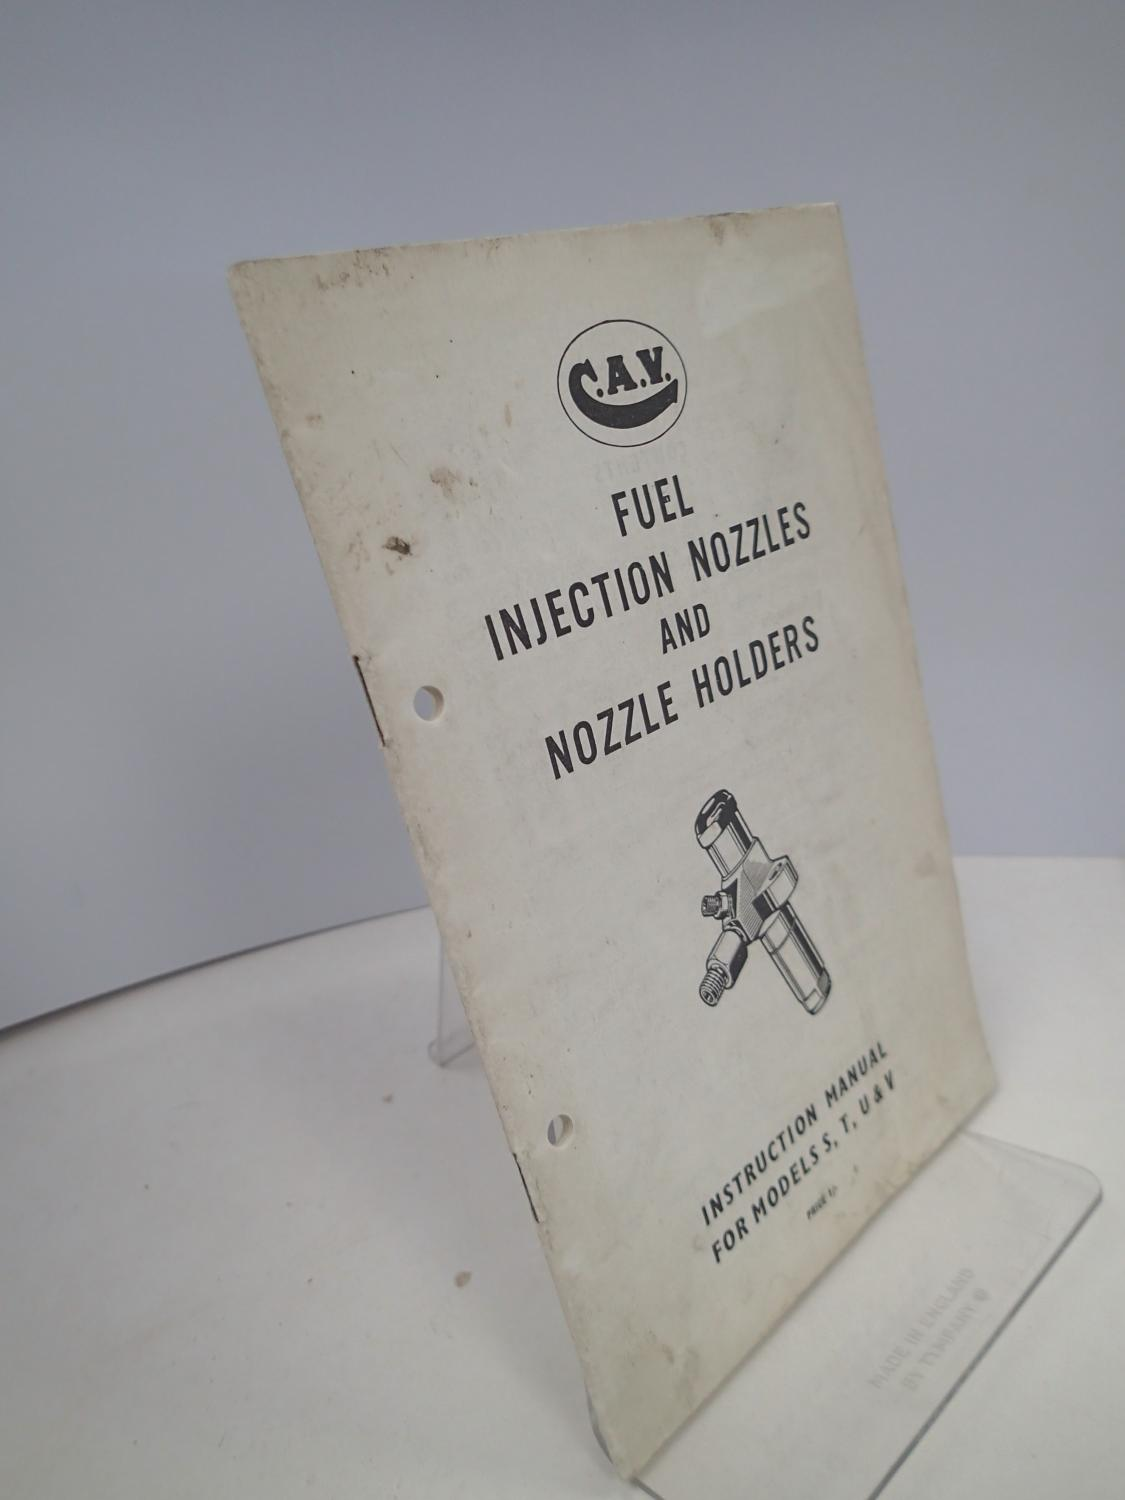 Fuel injection nozzles and nozzle holders instruction manual for fuel injection nozzles and nozzle holders instruction manual for models s t u publicscrutiny Image collections